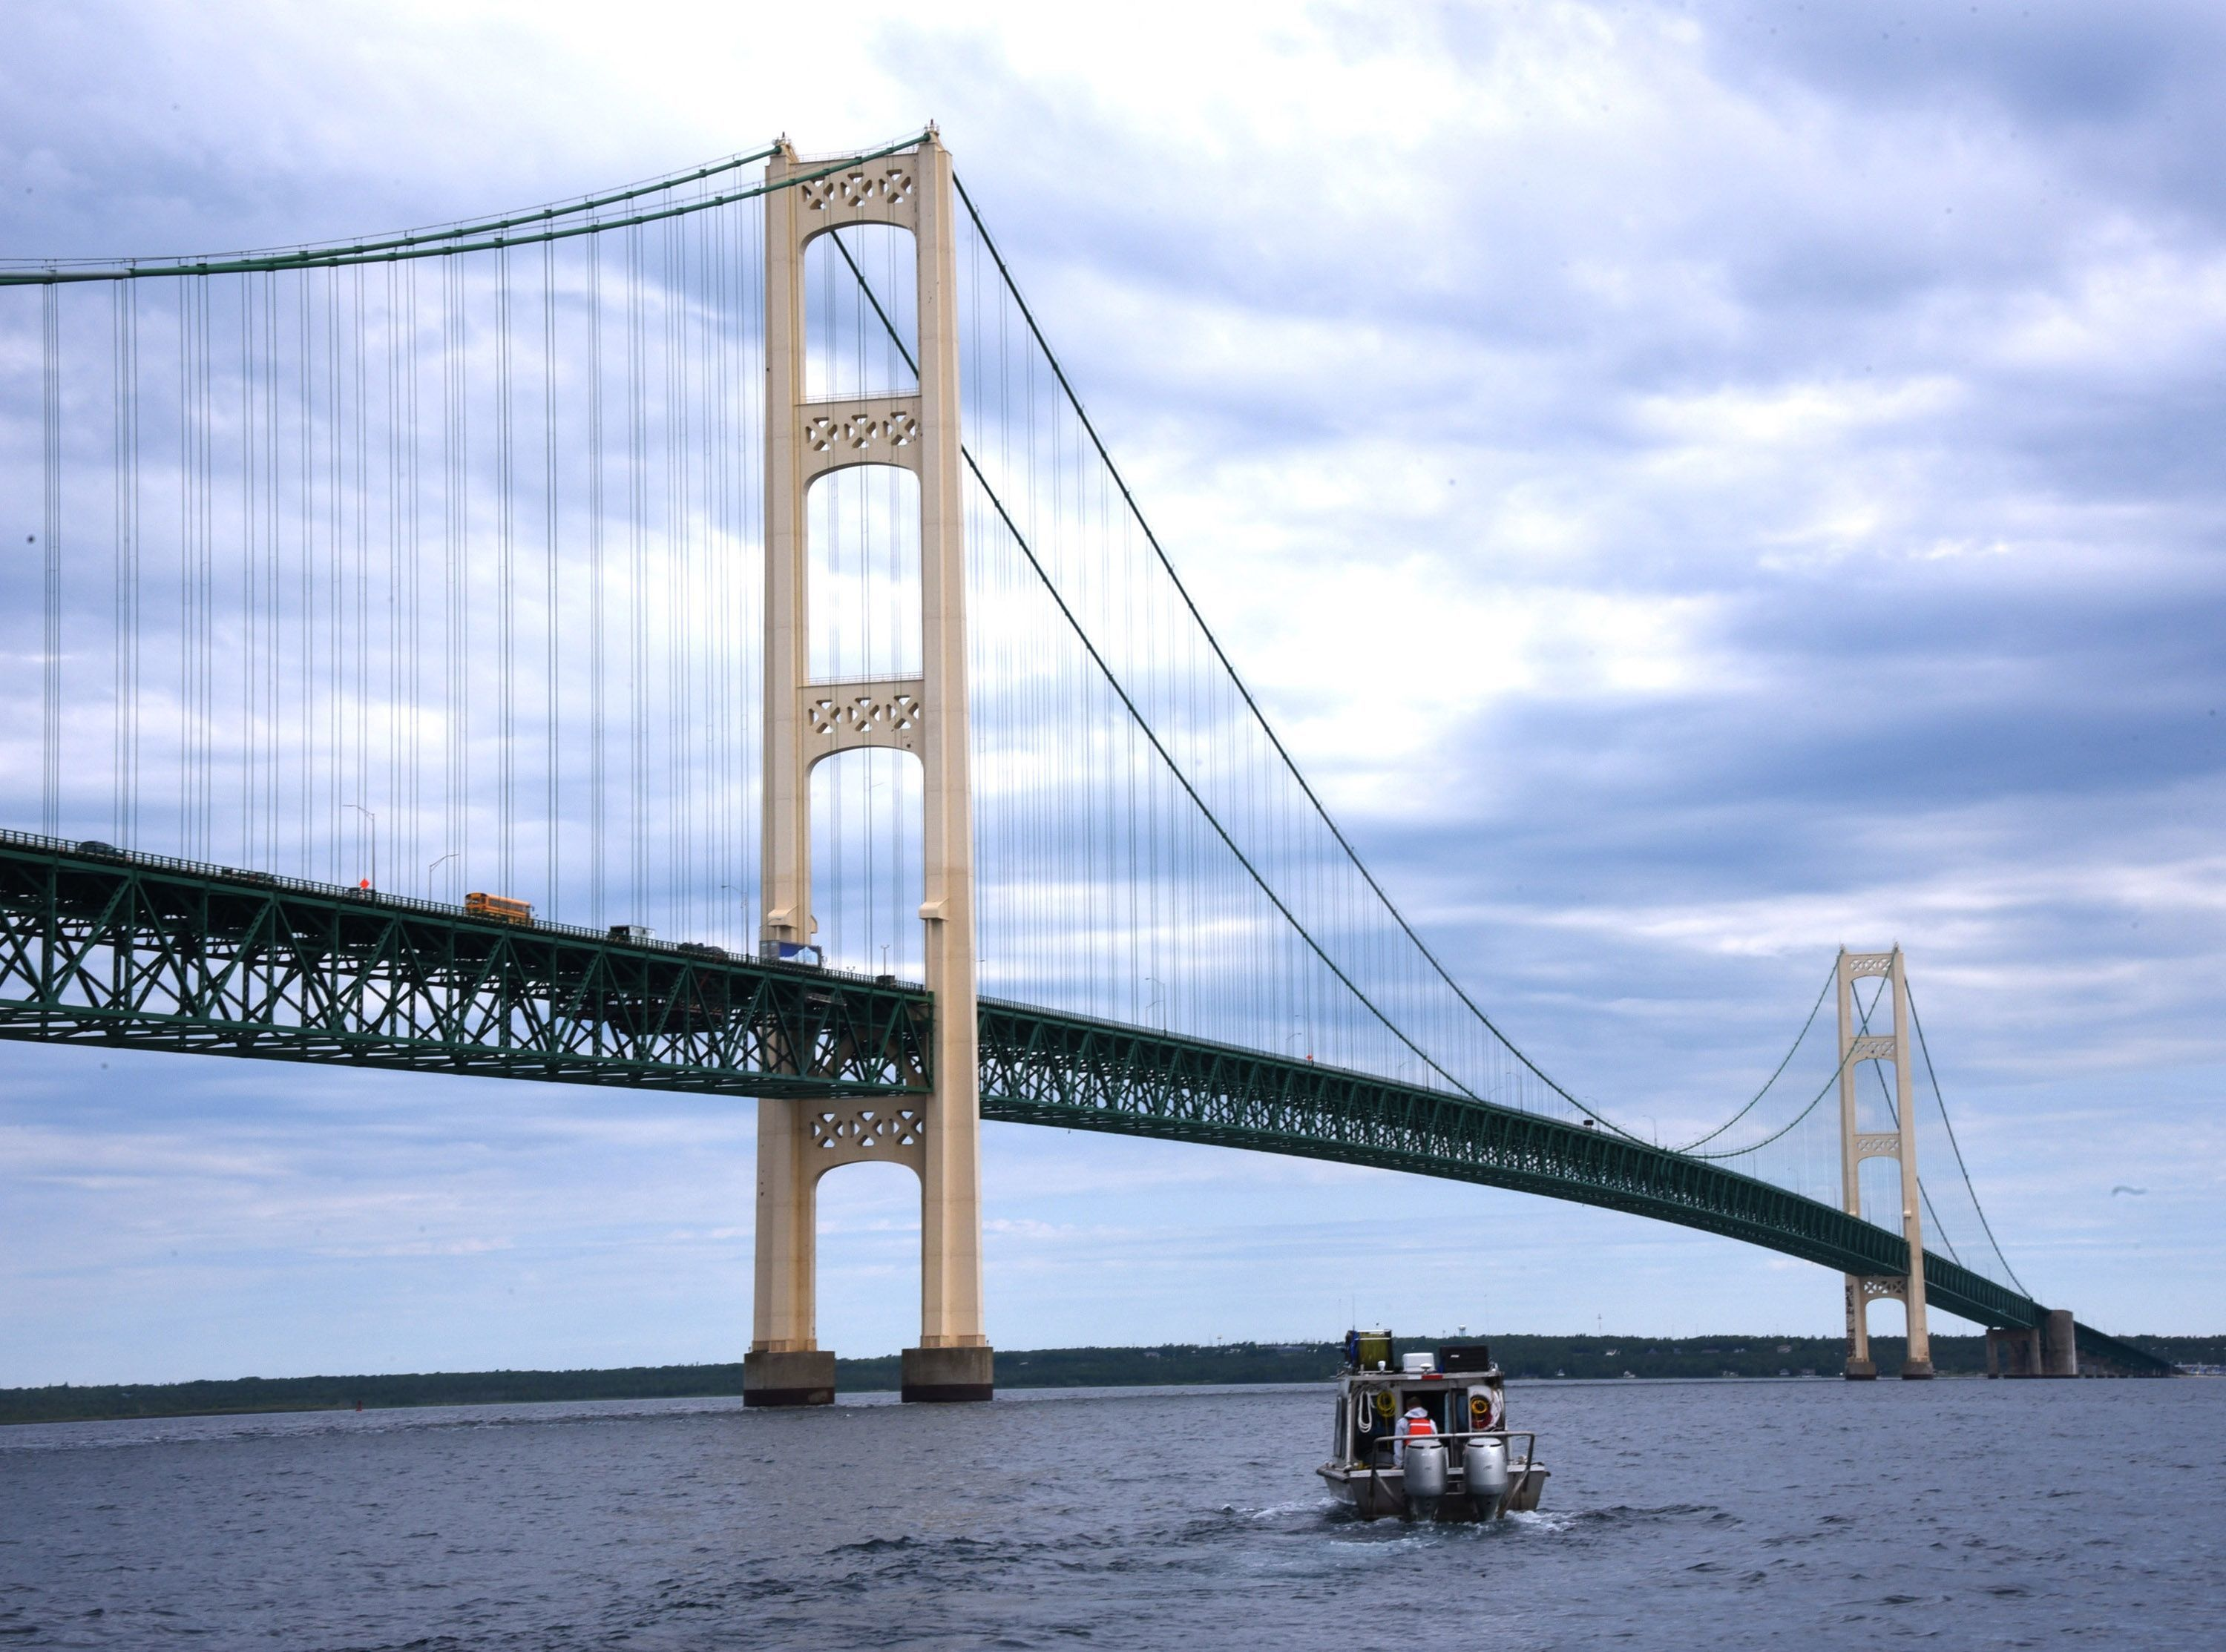 Line 5 transports about 23 million gallons of oil and natural gas a day through the Upper Peninsula, including a four-mile stretch through the Straits of Mackinac.